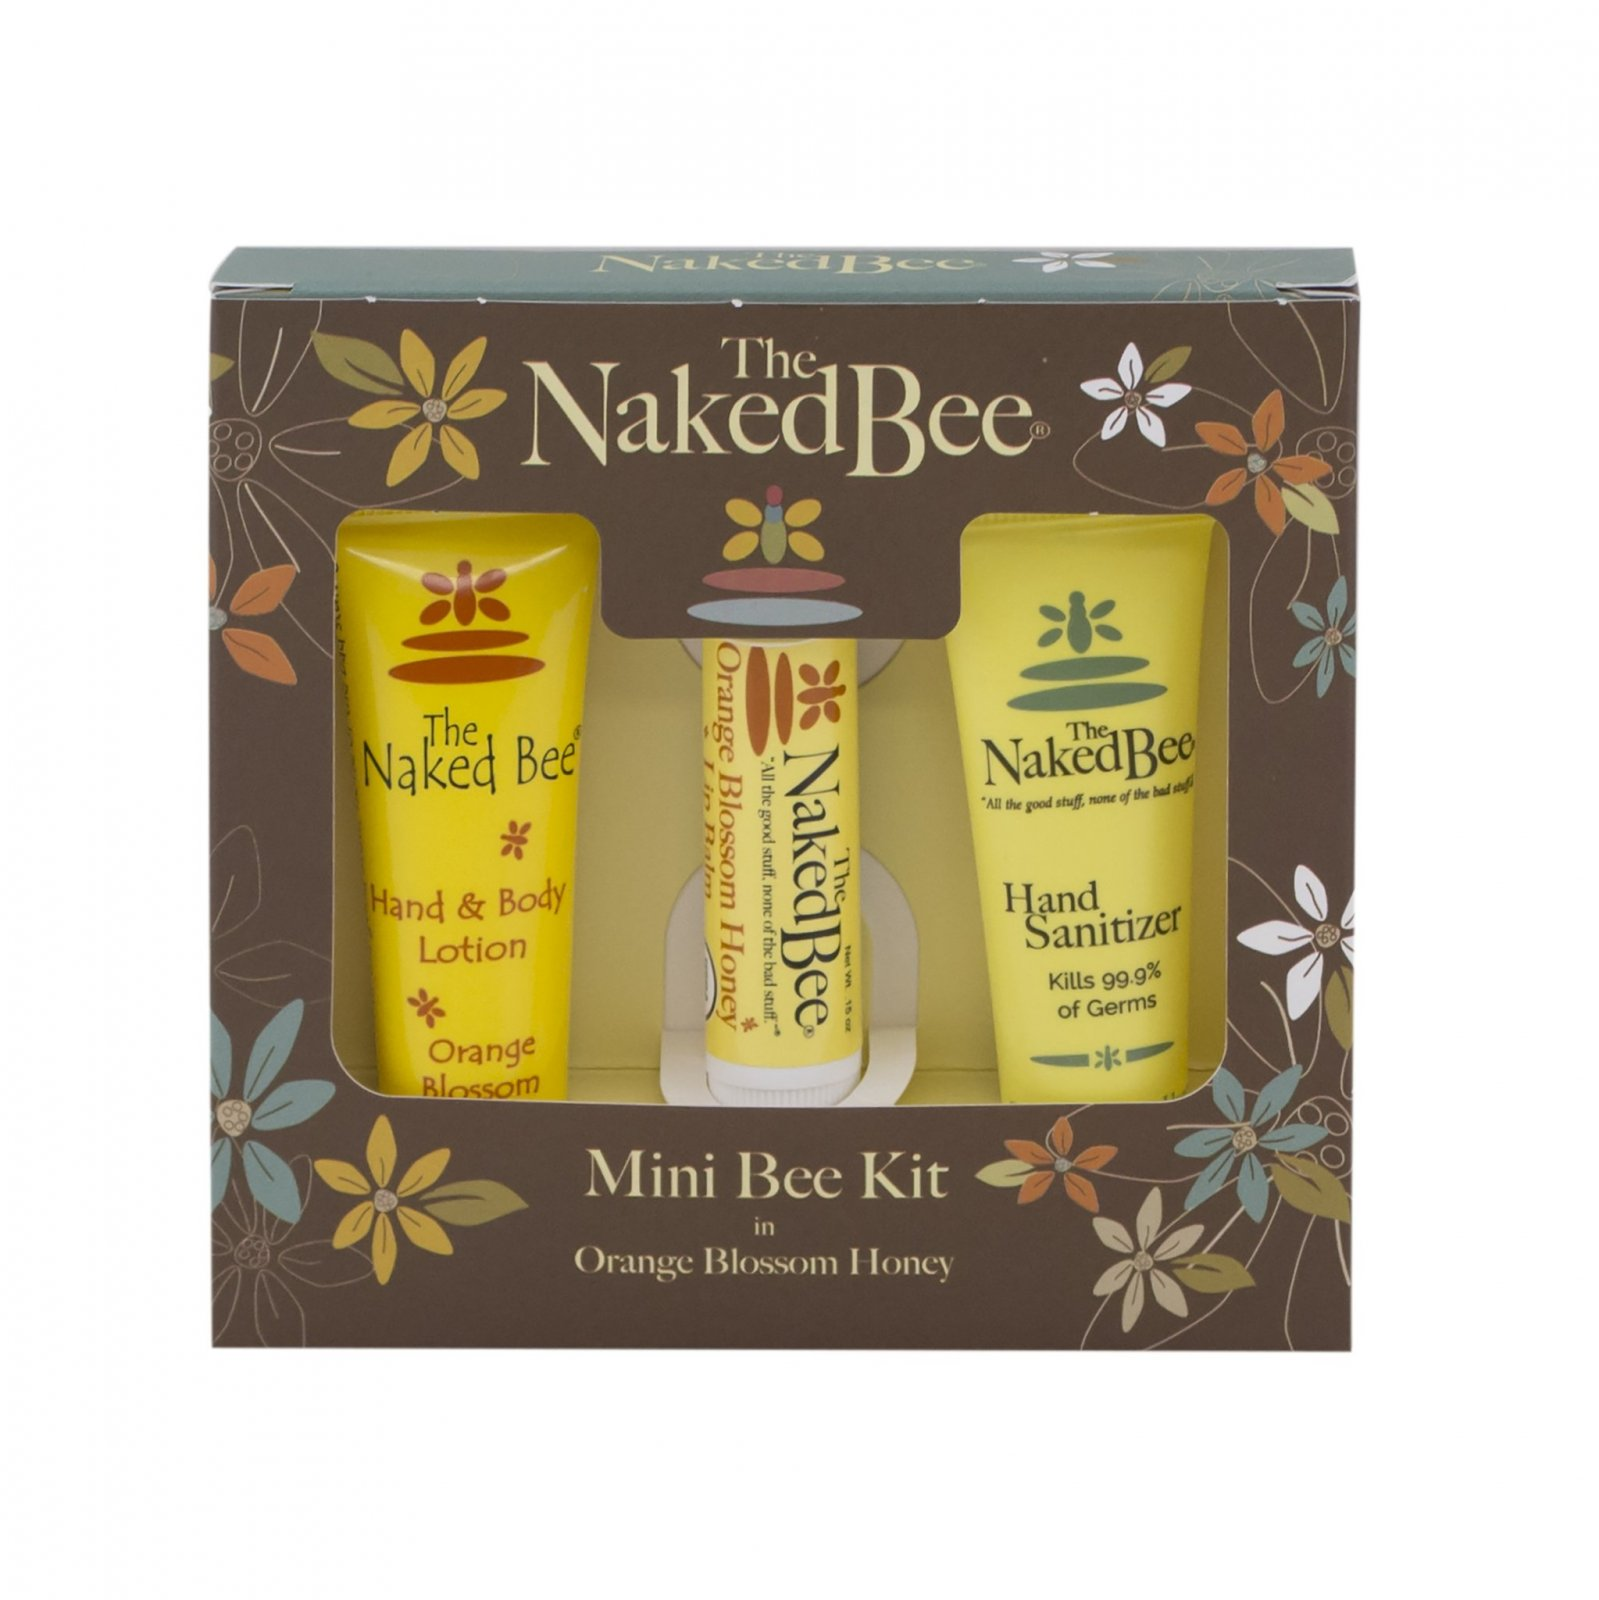 Naked Bee Mini Bee Kit - Orange Blossom Honey